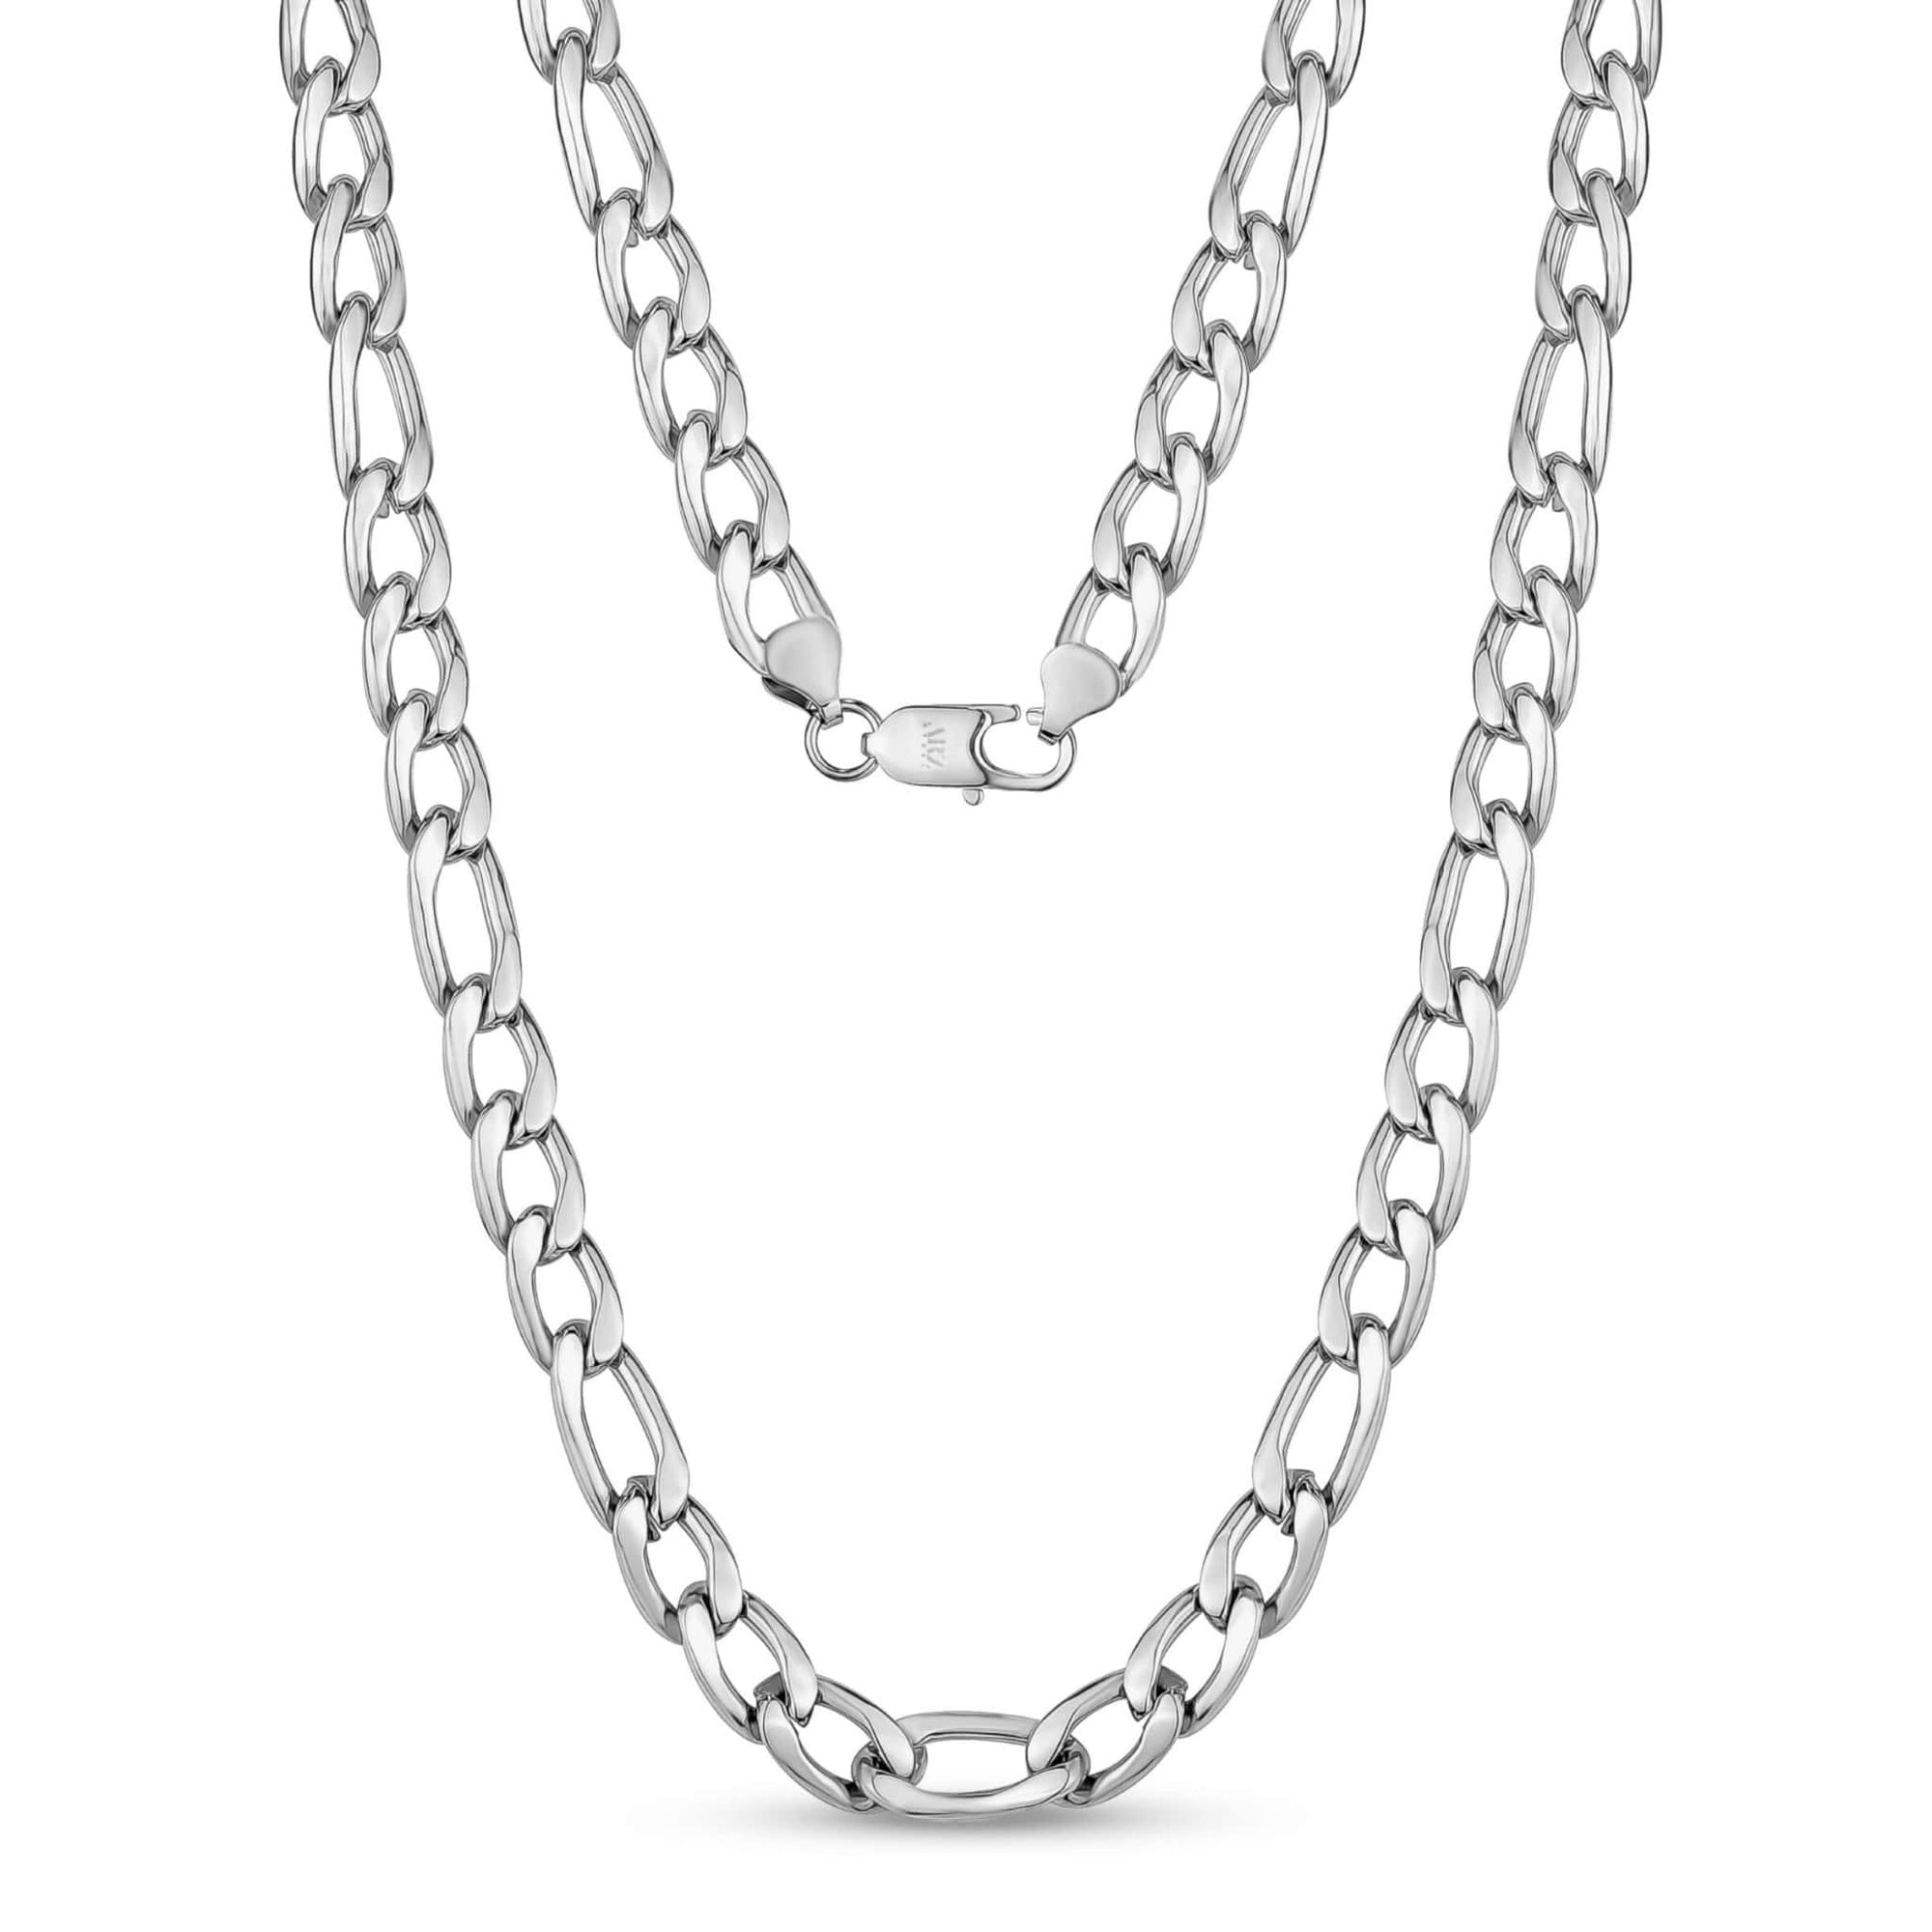 10mm Stainless Steel Figaro Link Chain Necklace at Arman's Jewellers